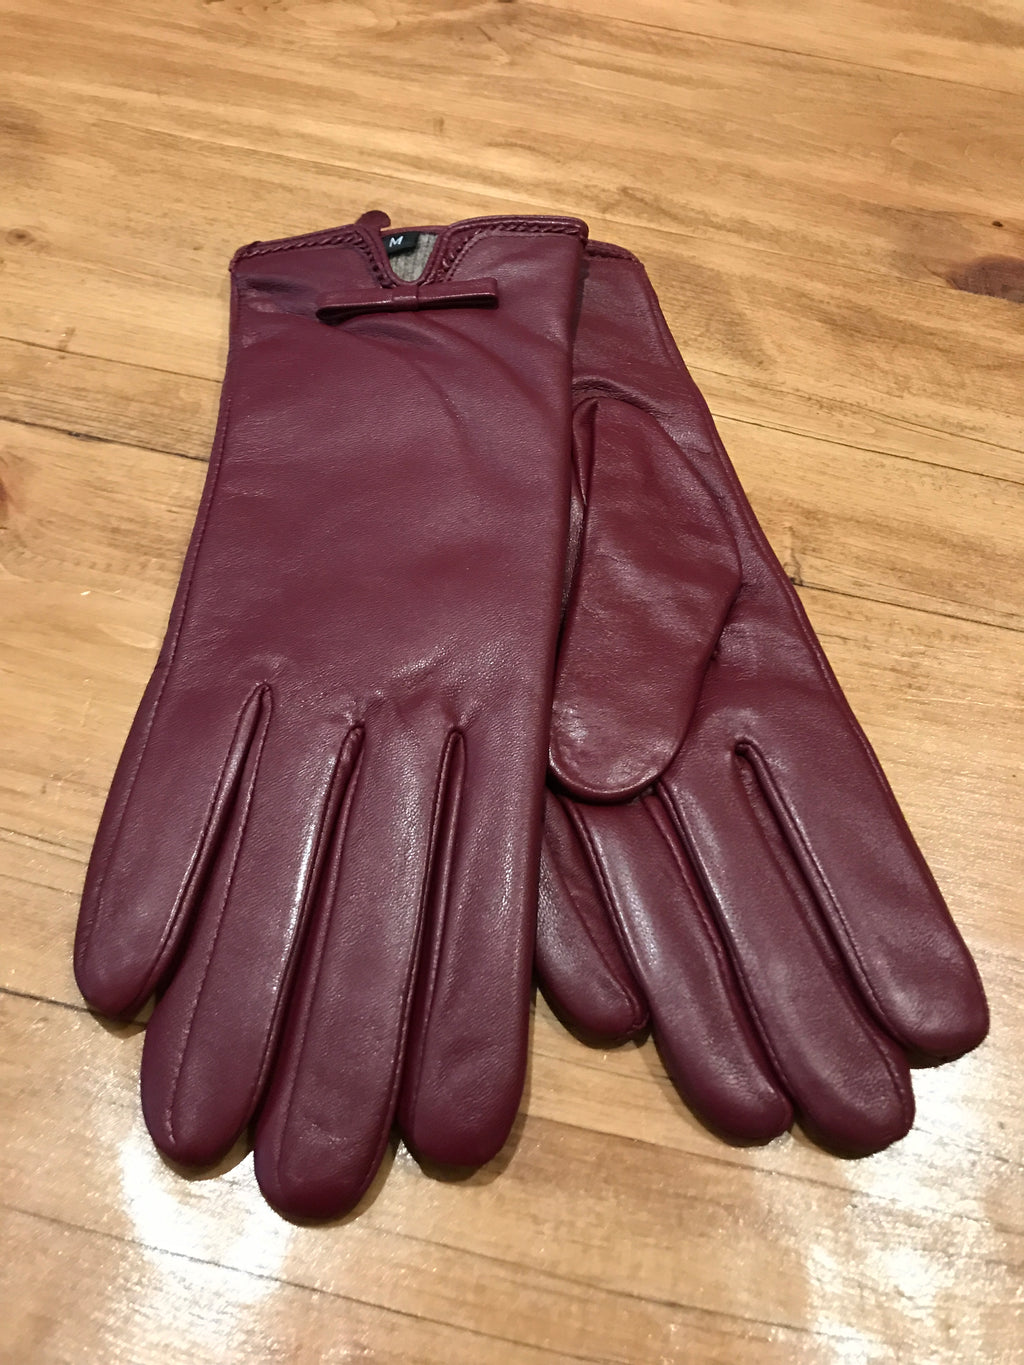 Gloves - Deep Burgundy Leather